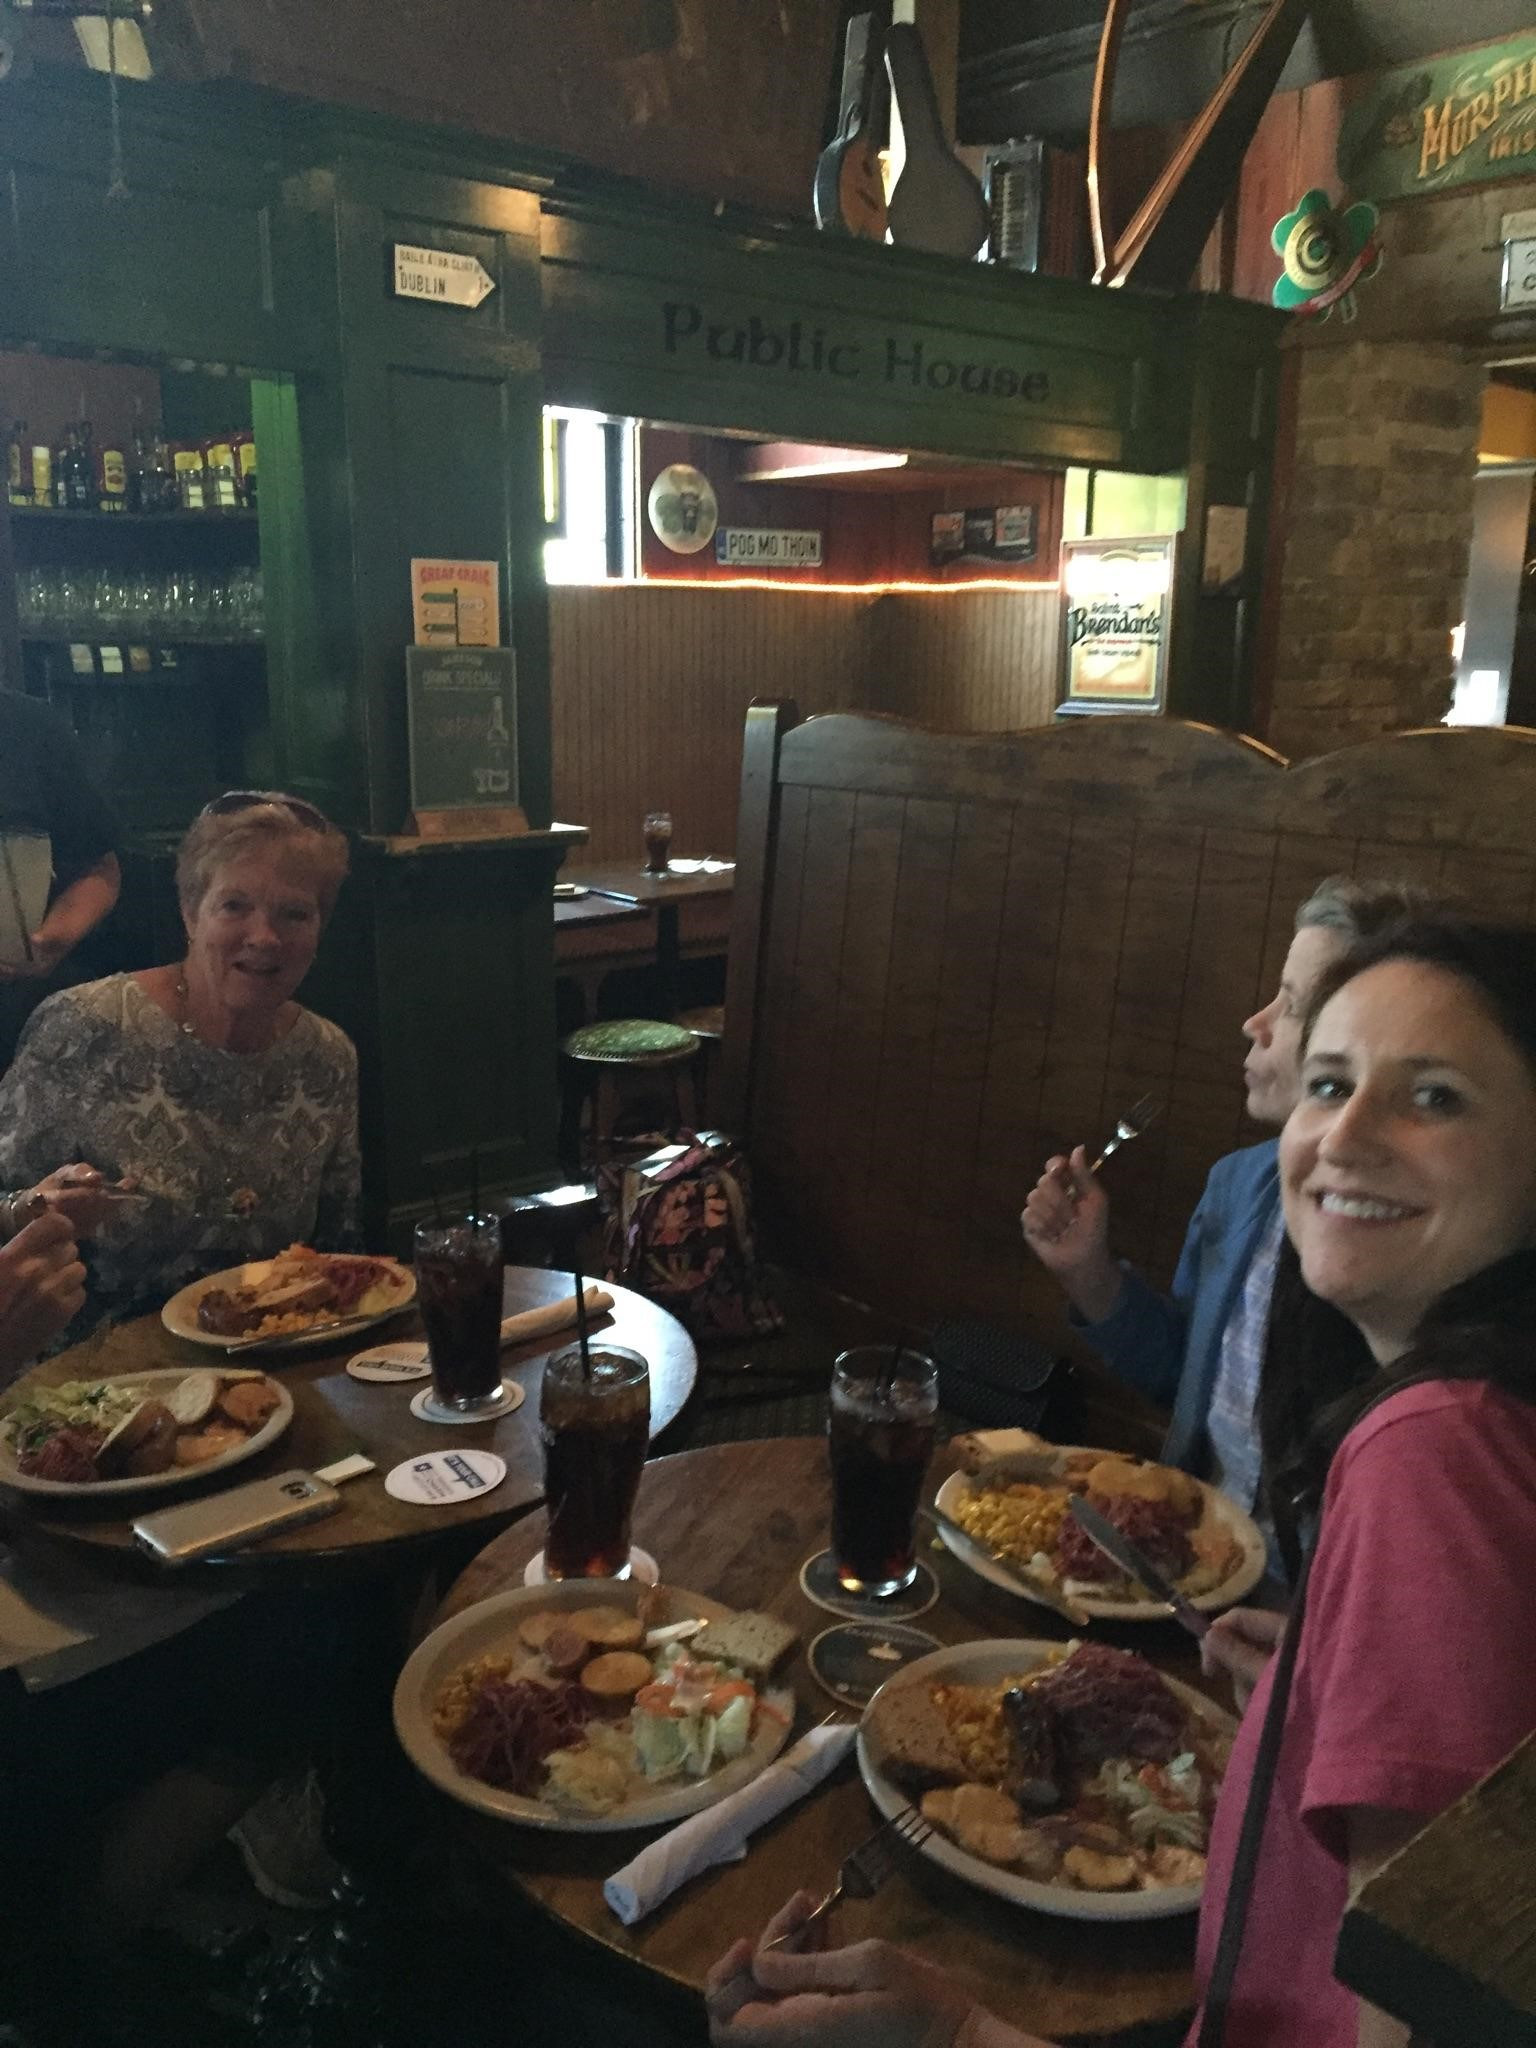 Lunch in Nine Irish Brother's in West Lafayette, Indiana